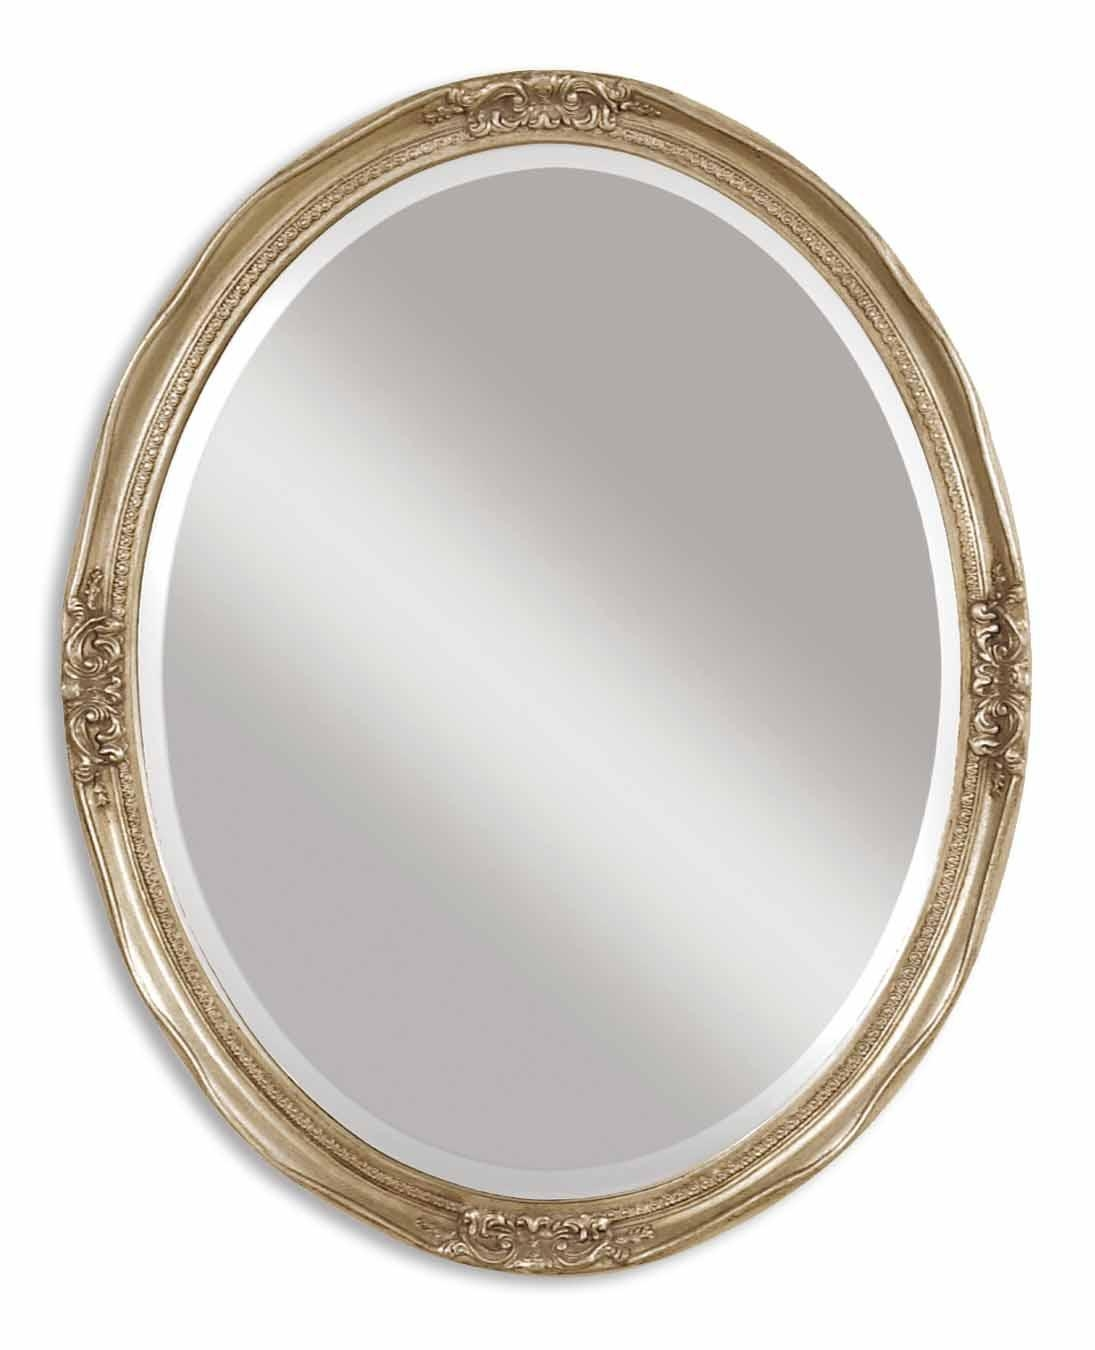 Uttermost Newport Oval Silver Mirror 08565 B Throughout Oval Silver Mirror (View 4 of 20)